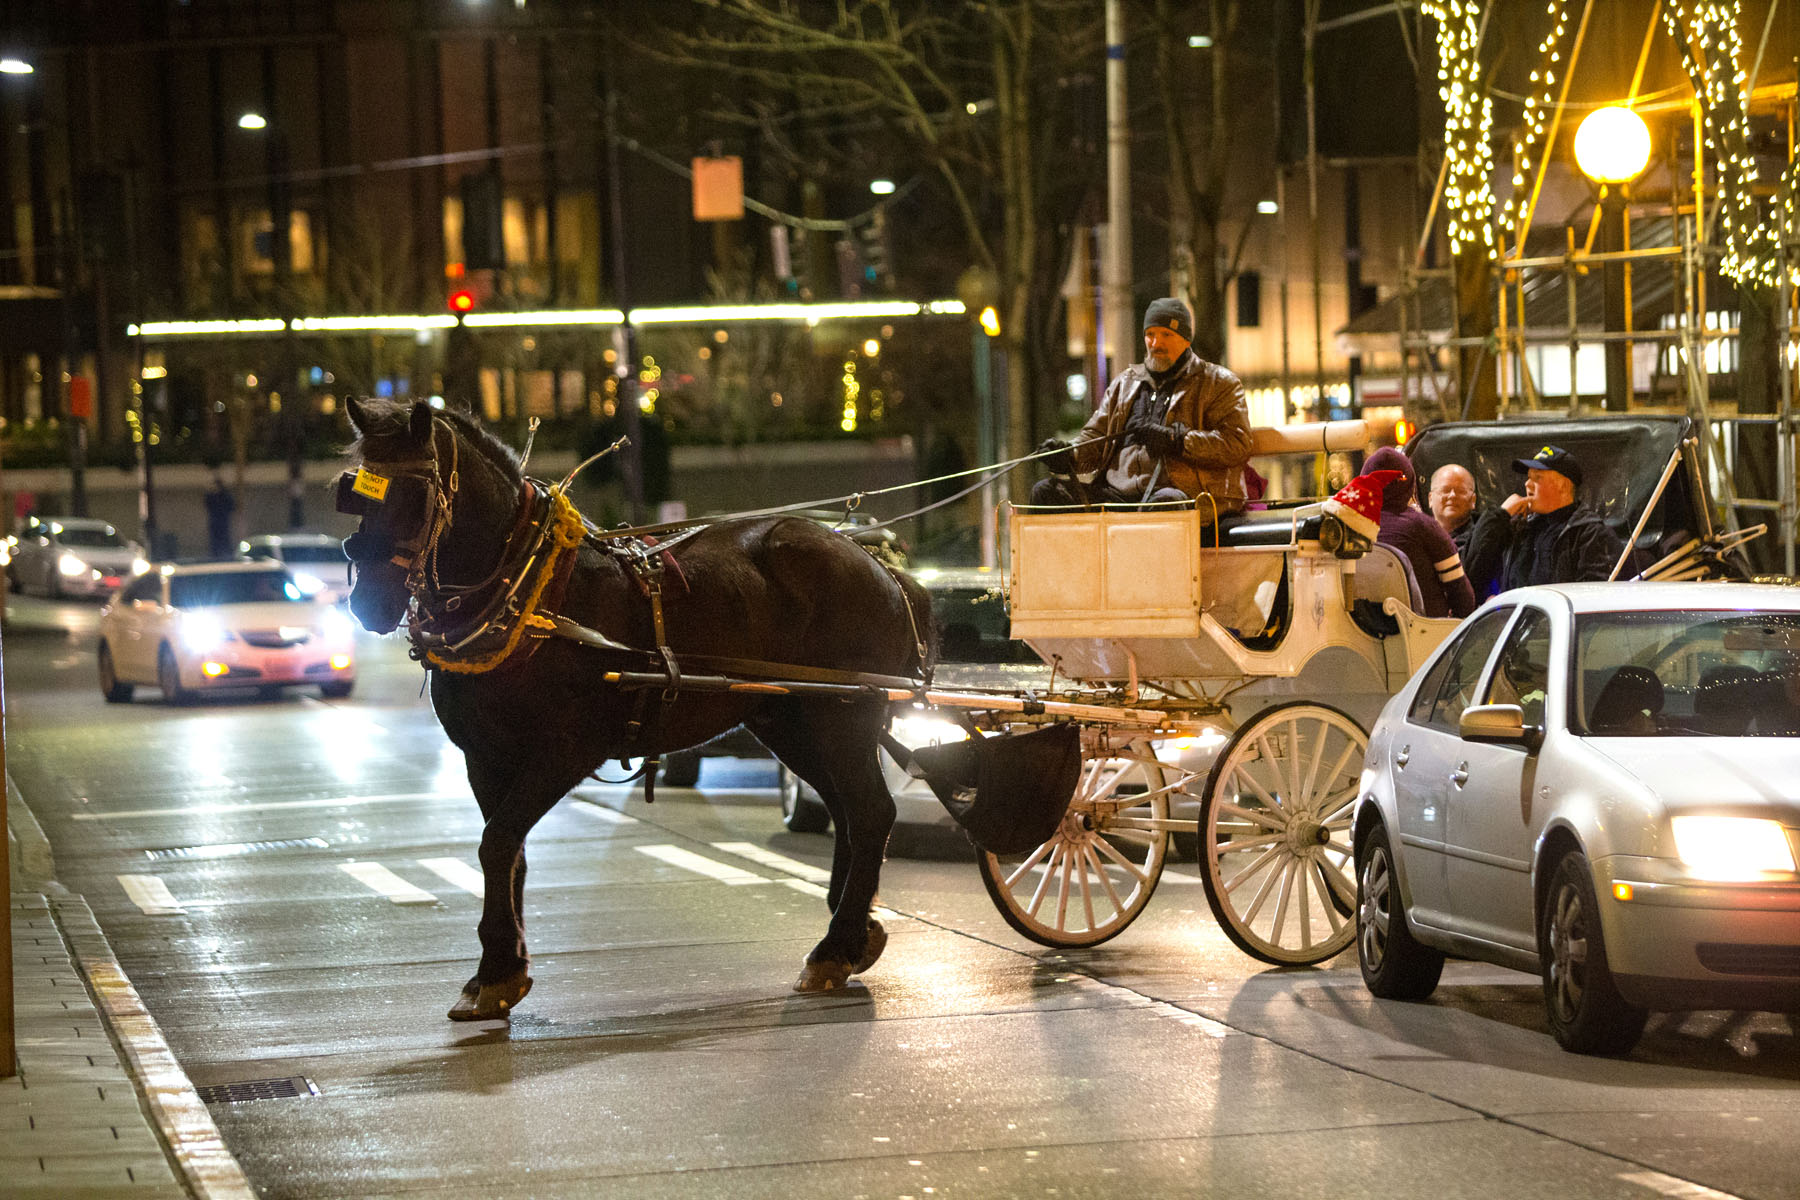 Steve Beckmann, owner of Sealth Horse Carriages, navigates his draft horse, Amos, through city traffic on 5th Avenue in Seattle, WA on December 17, 2017. Beckmann says he was the first horse and carriage business in Seattle and now, 42 years later, he is the only one left. (© Karen Ducey)